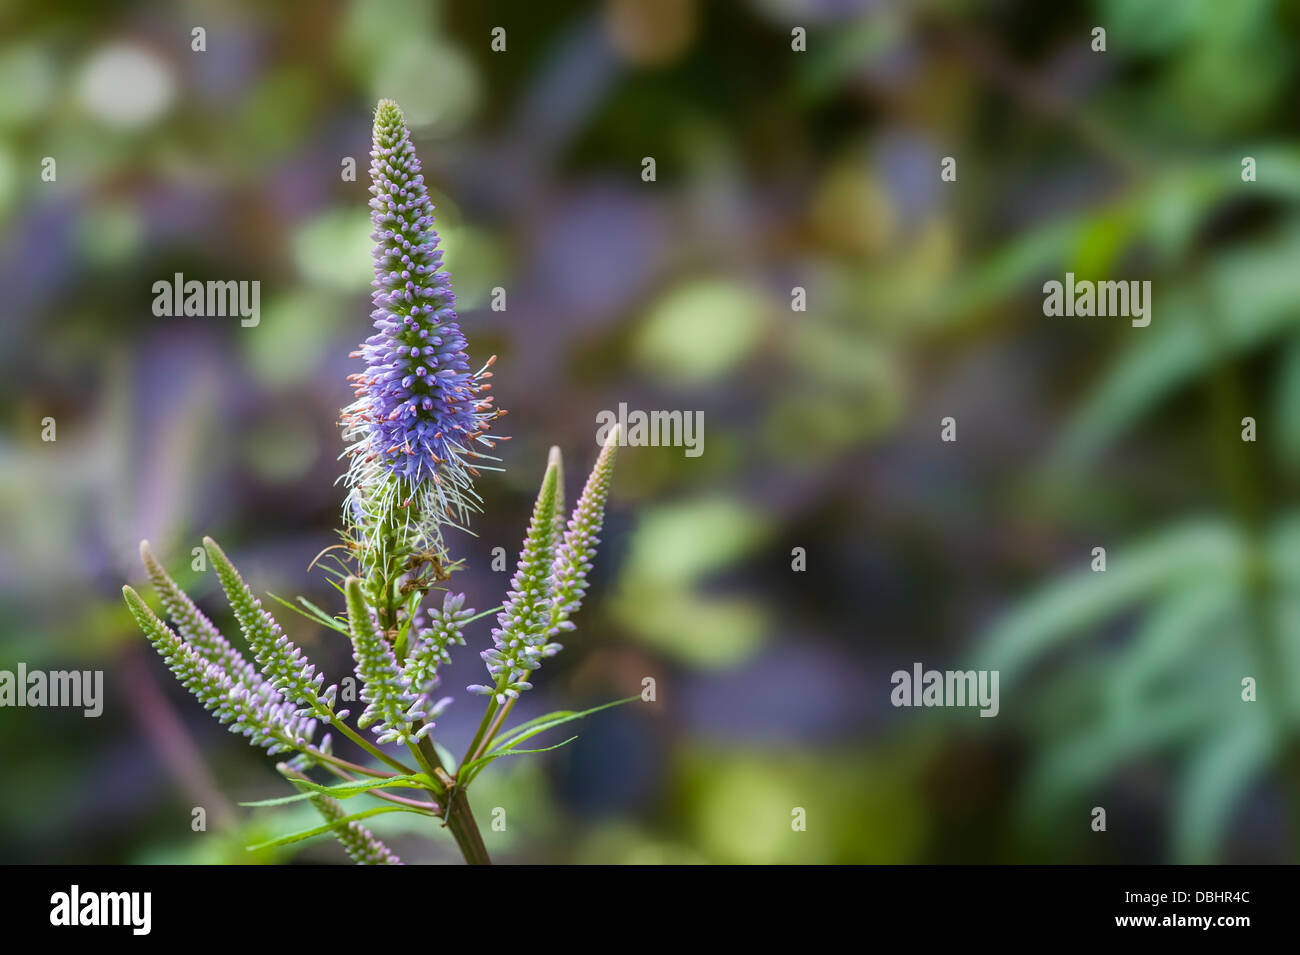 Veronicastrum virginicum 'Fascination' - Stock Image